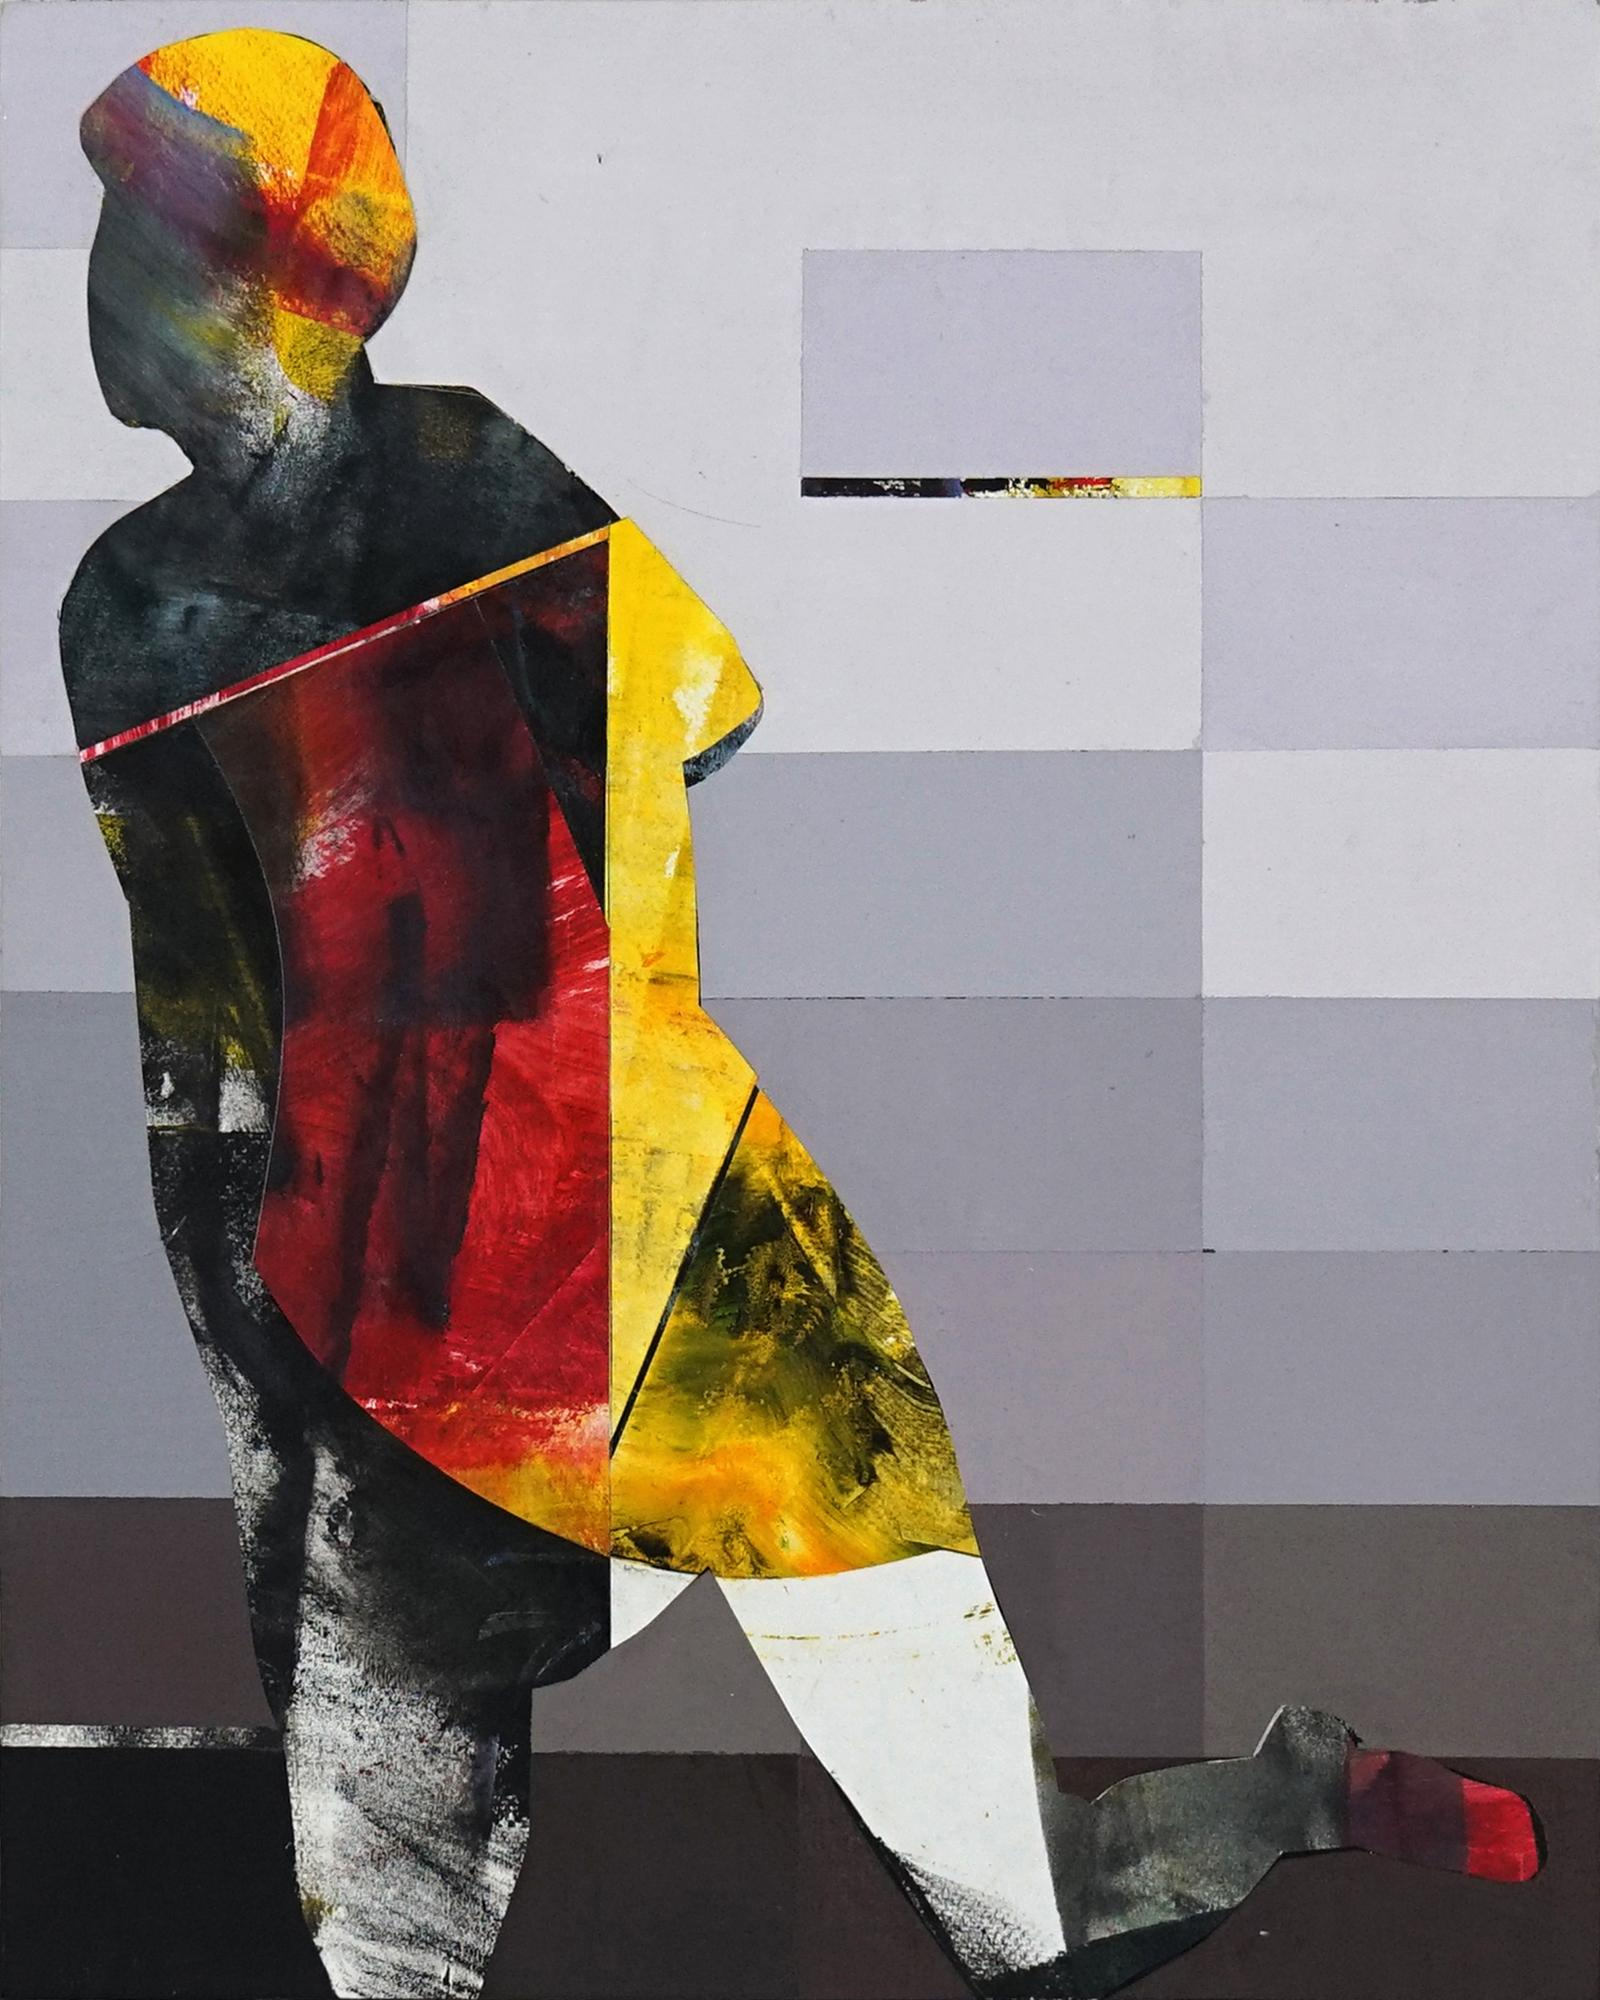 Pixel Study 3 - colorful abstract and figurative painting and photo of a women